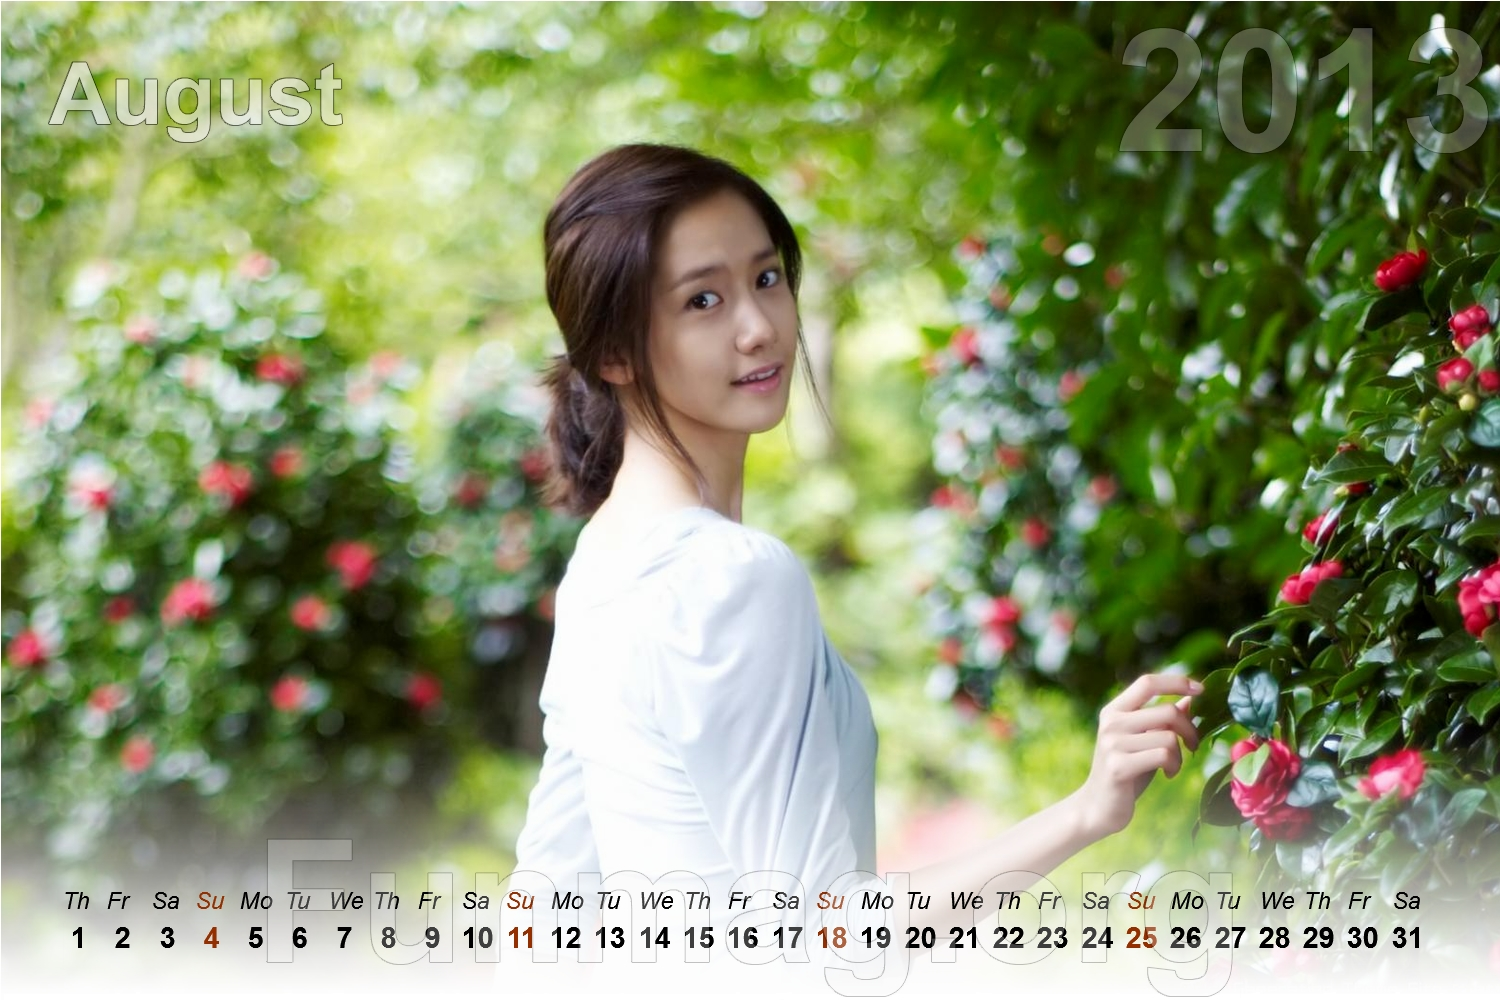 beautiful-women-calendar-2013- (8)